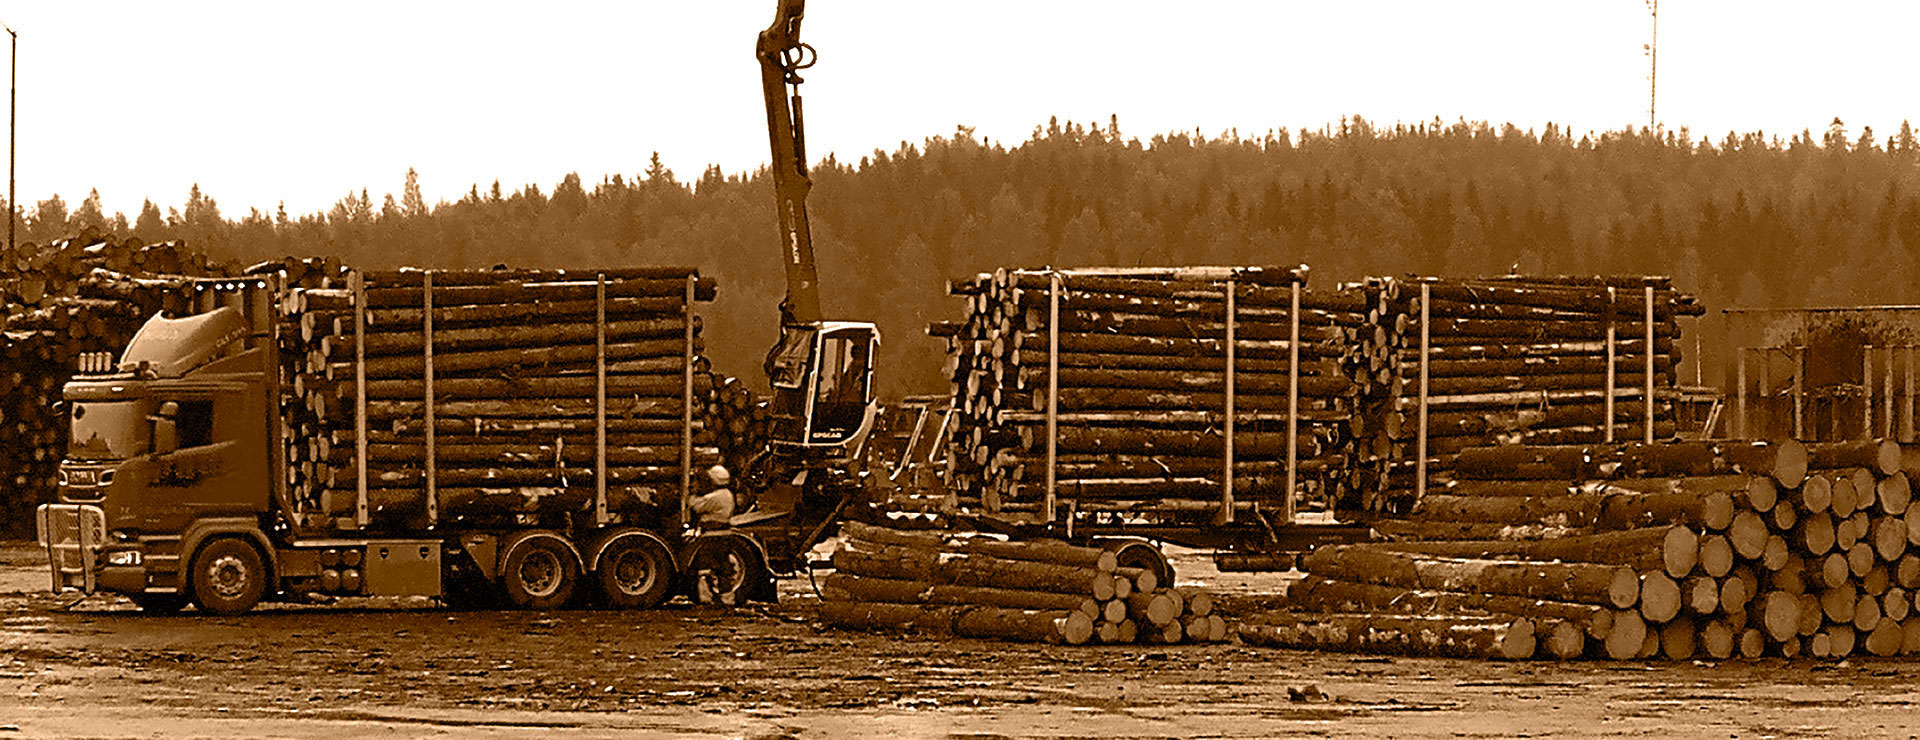 Transporting finnish wood